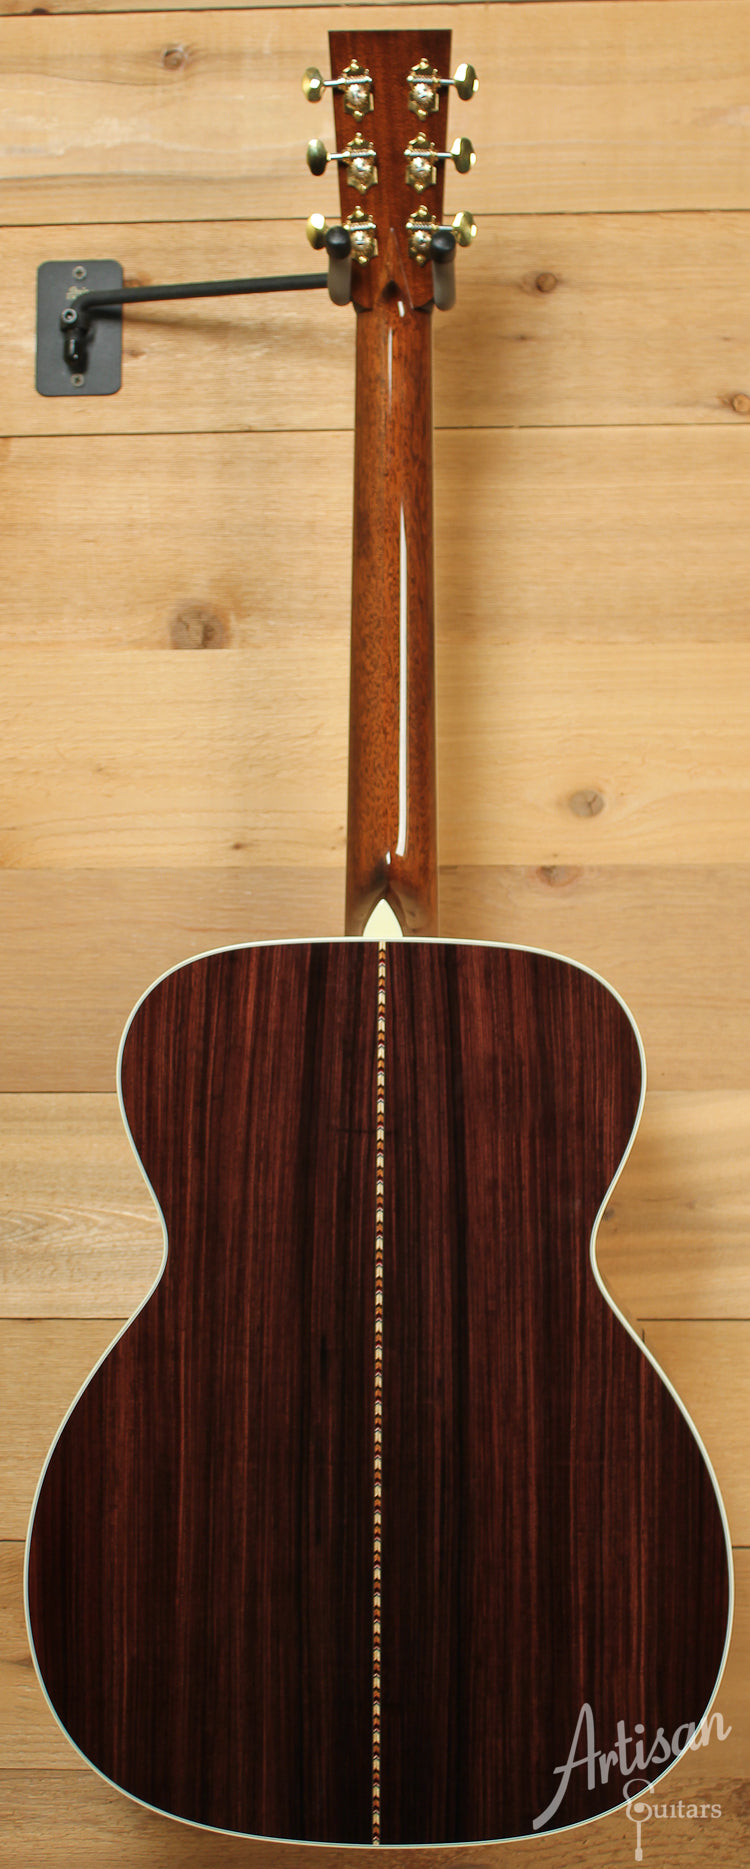 Collings OM3H G German Spruce and Indian Rosewood with Adirondack Braces ID-8194